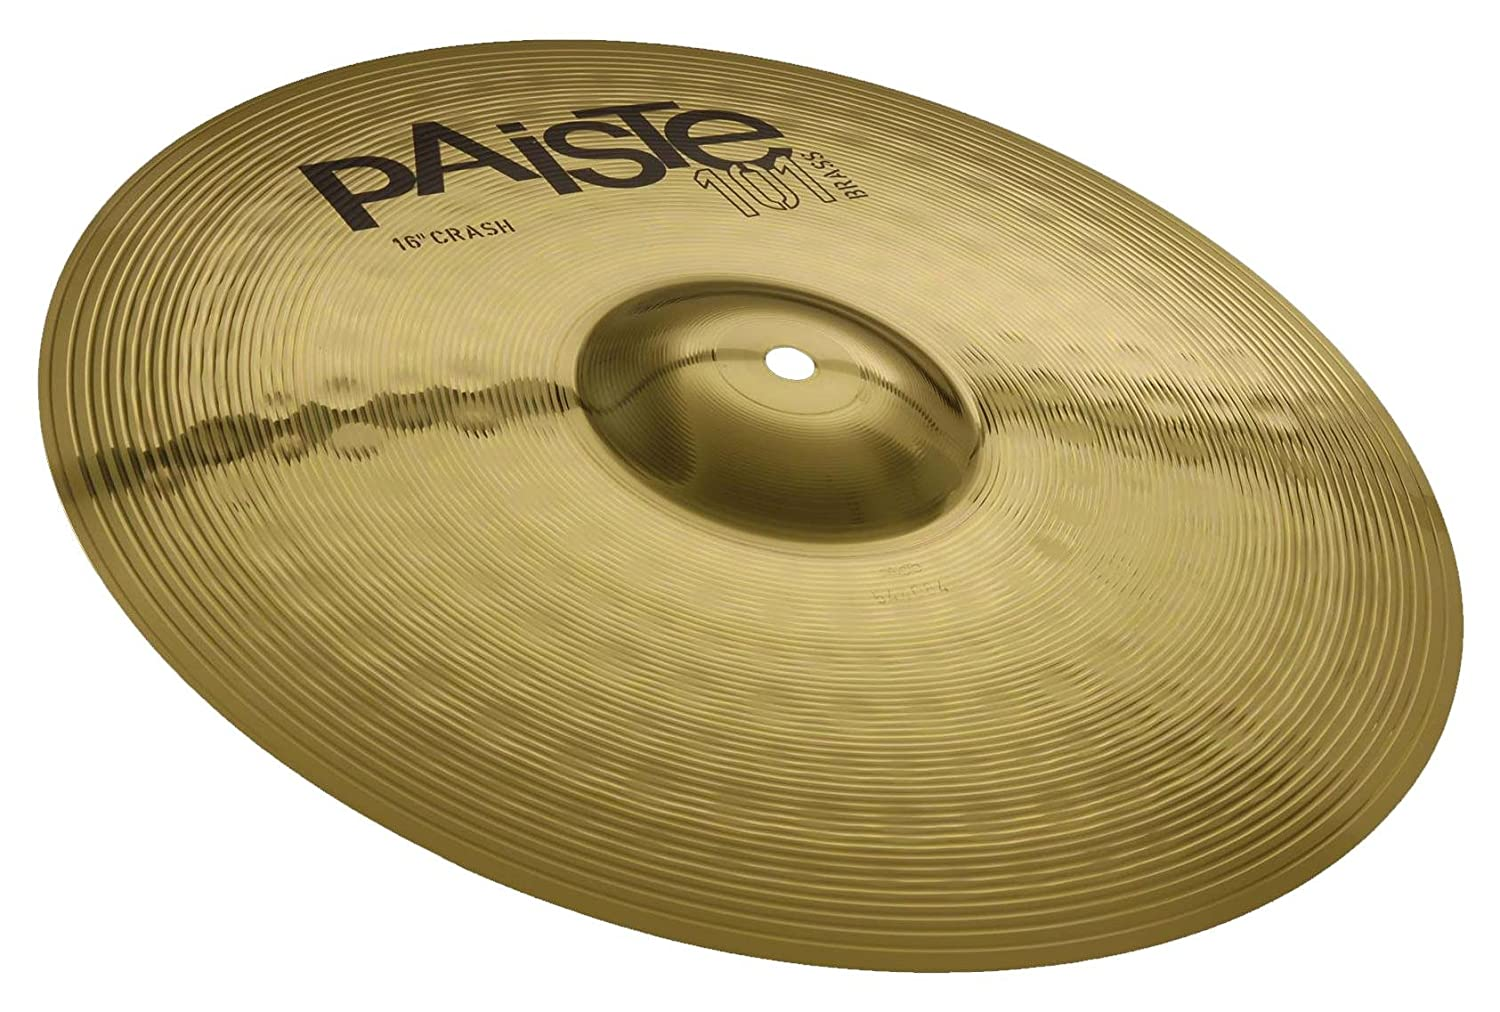 Paiste 101 Brass 16 Crash 870.110